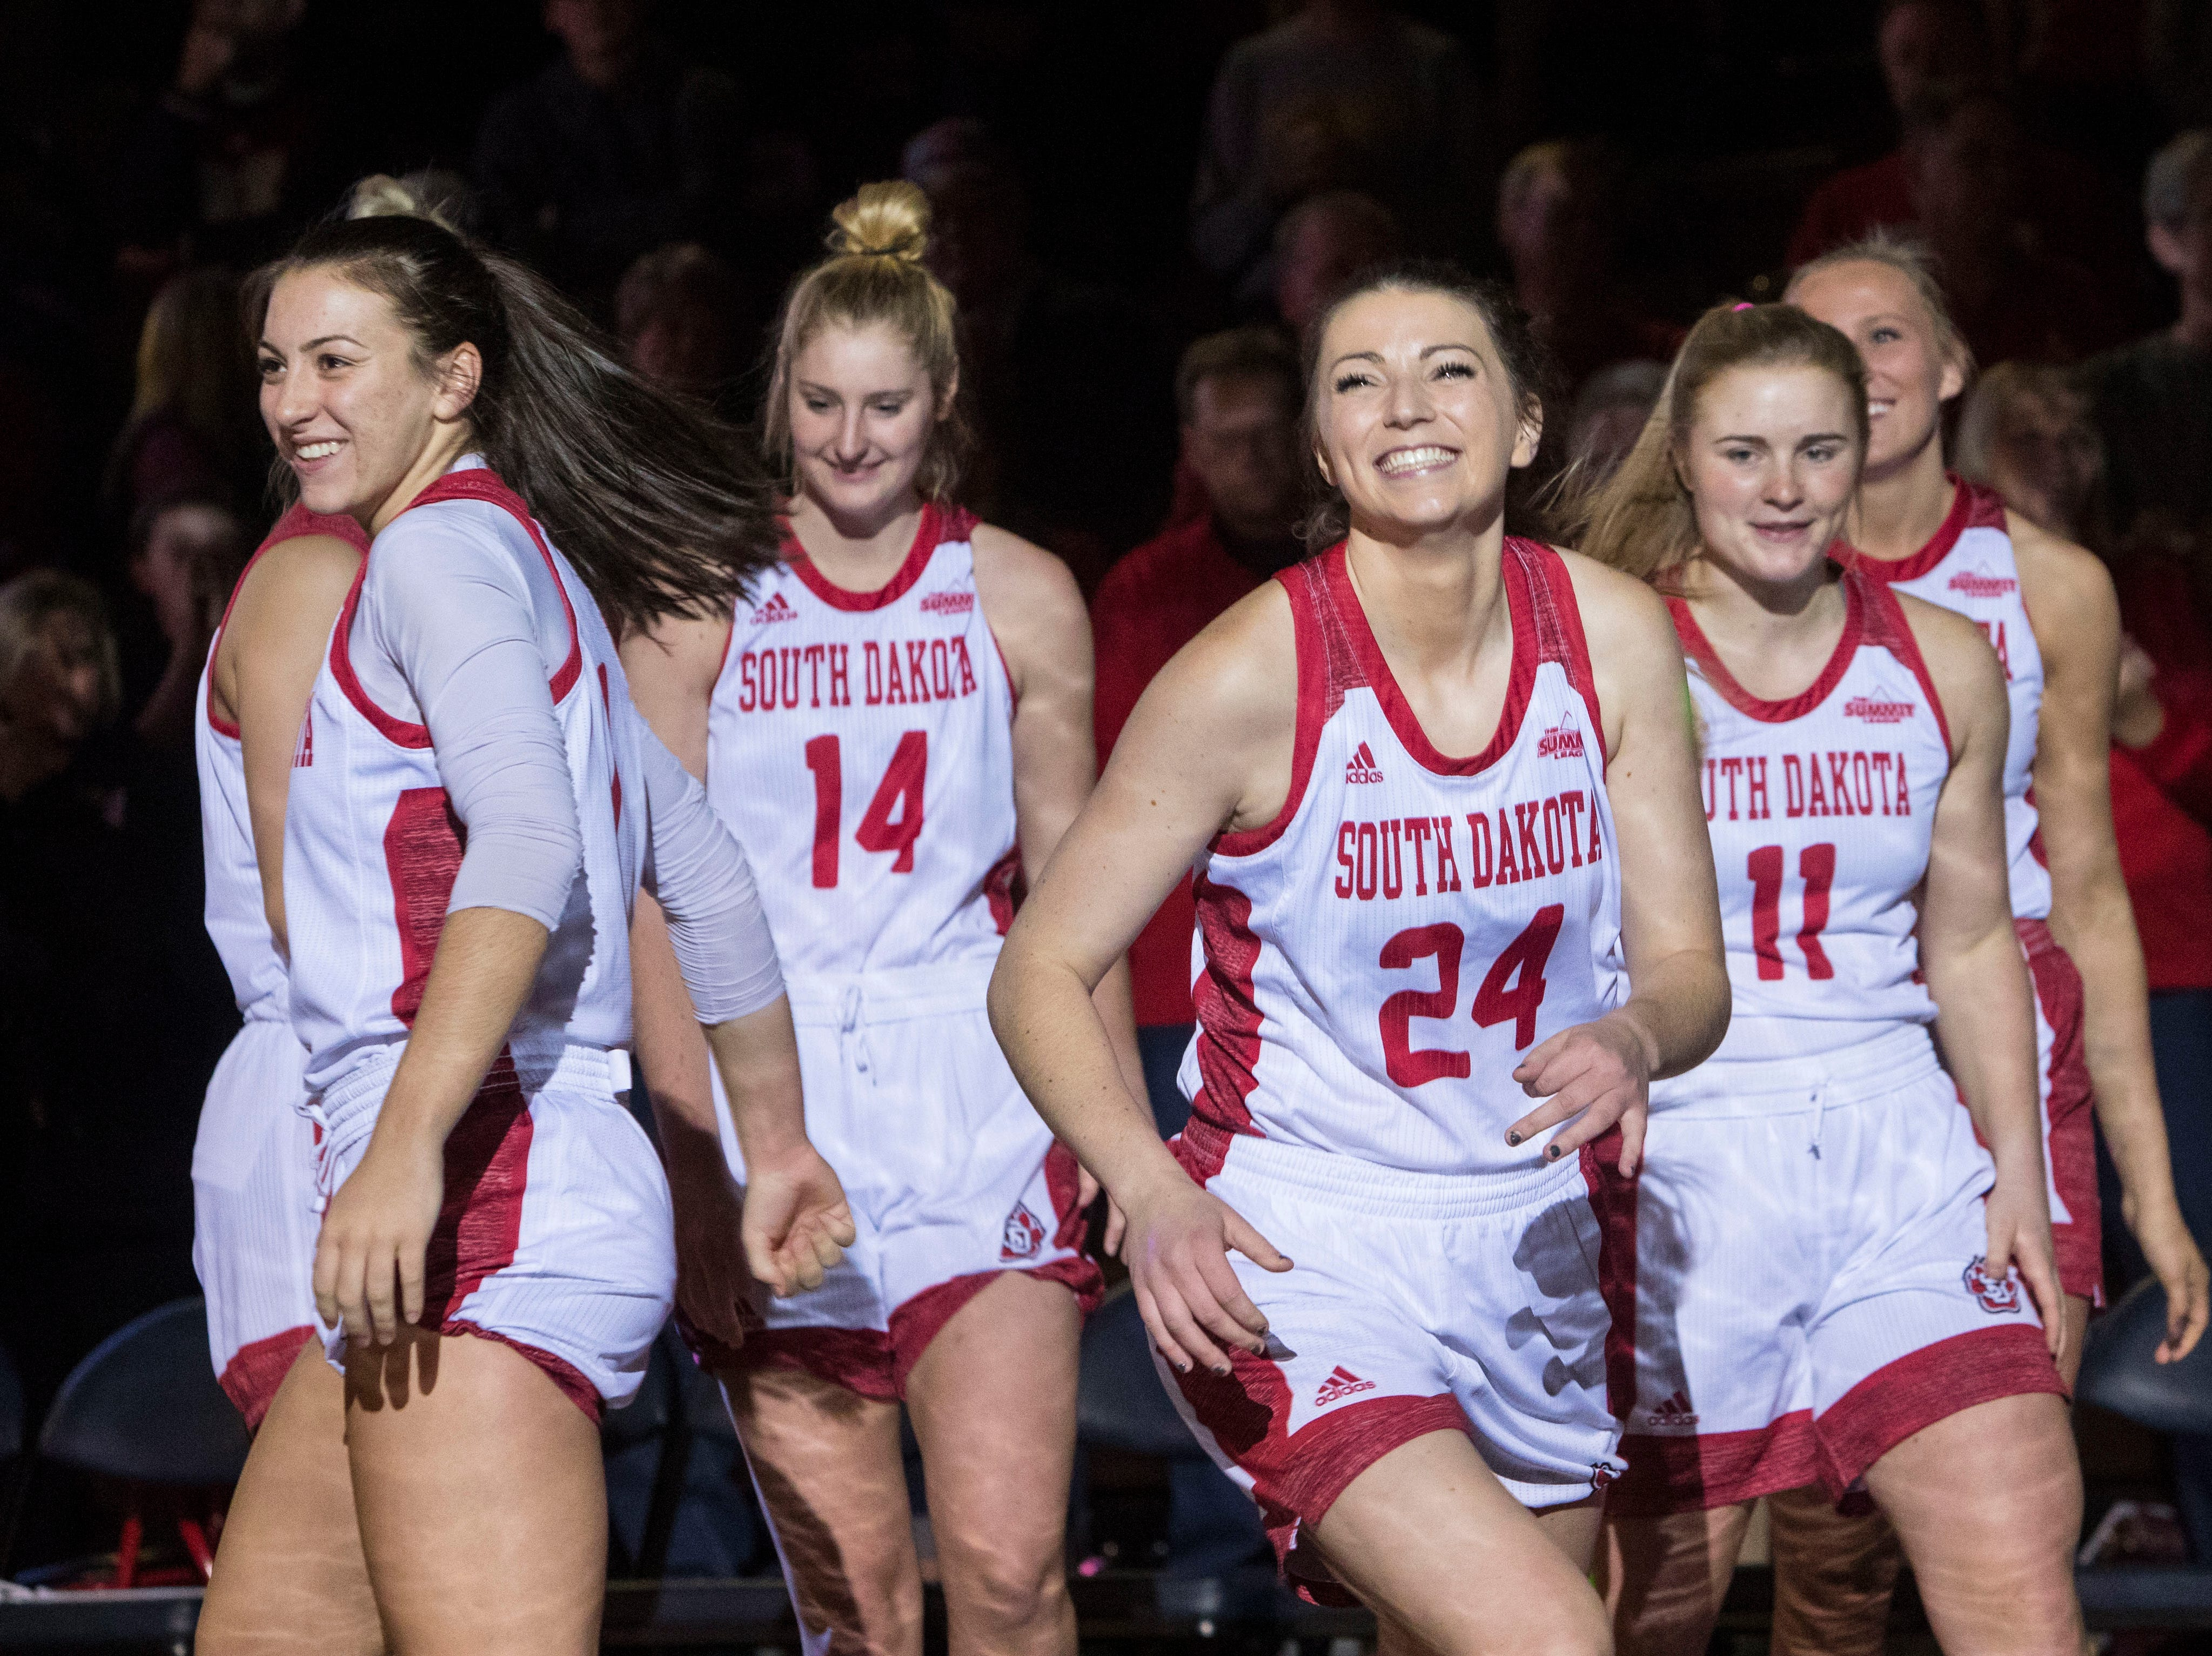 USD players get introduced to the crowd before the game against Wichita State at the Sanford Pentagon in Sioux Falls, S.D., Wednesday, Nov. 21, 2018.